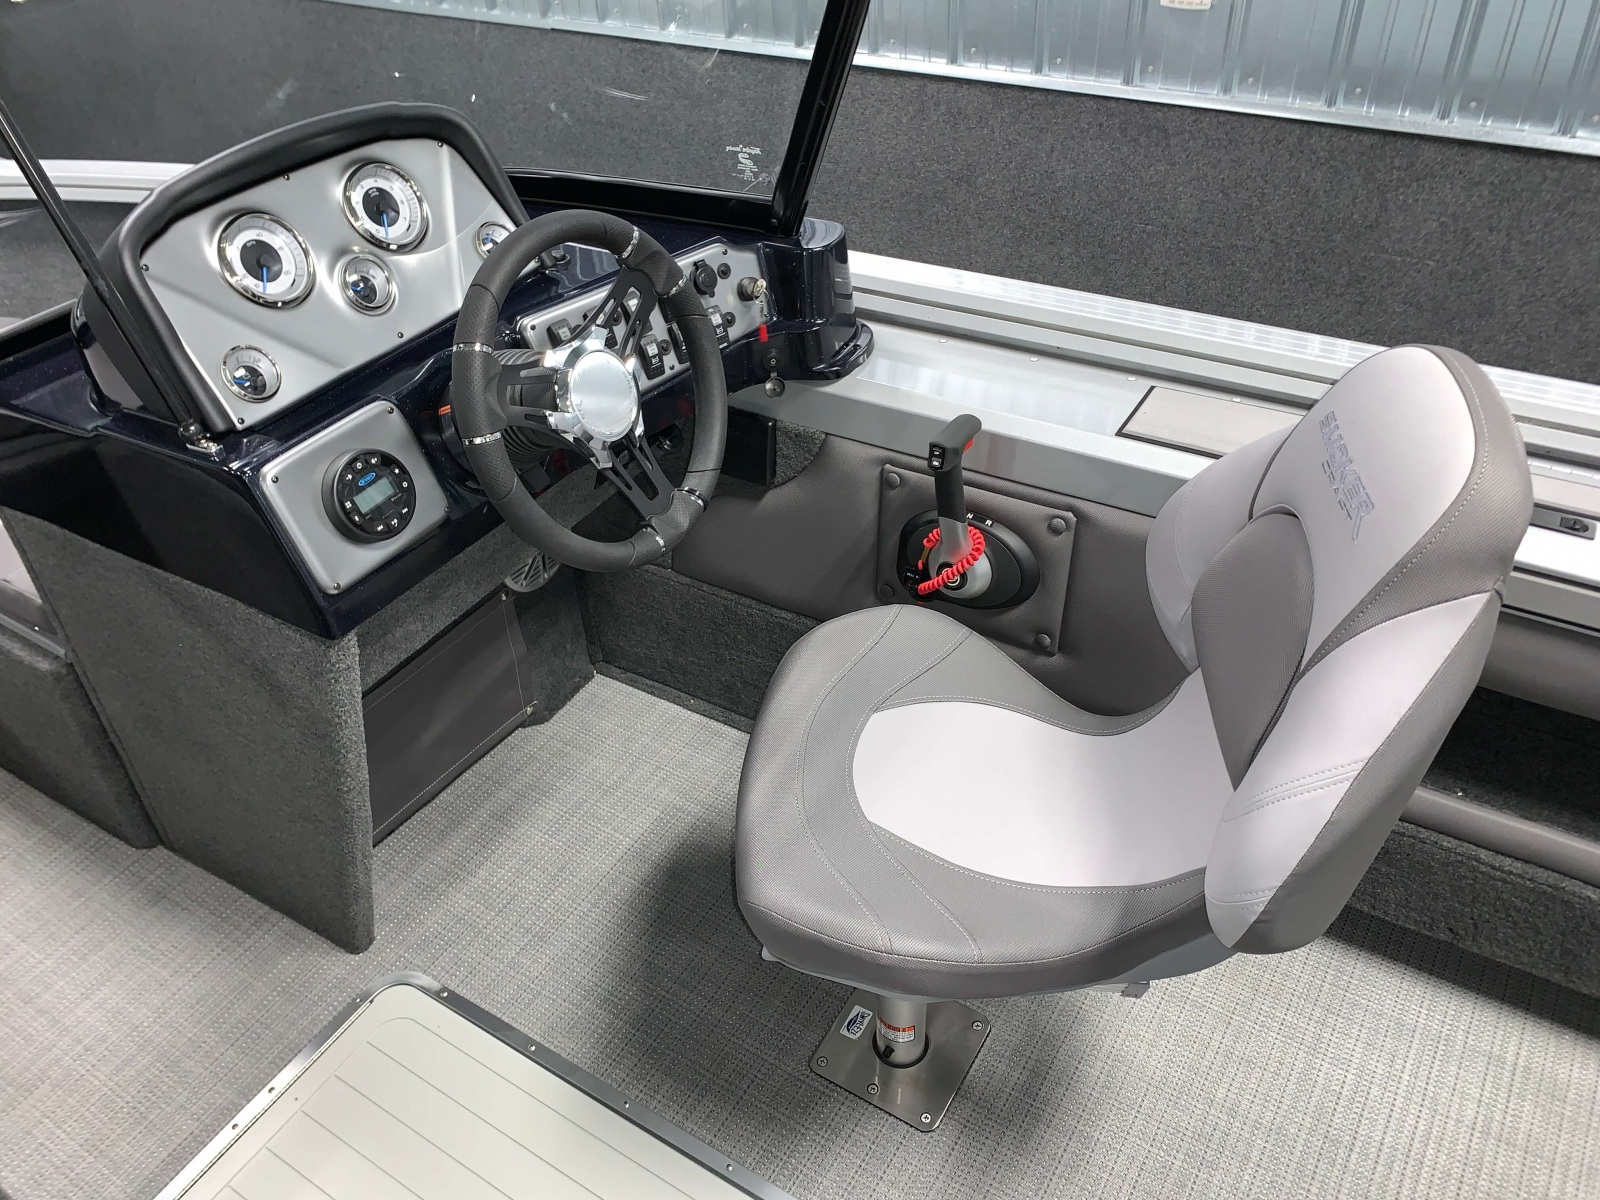 Driver's Console of a 2020 Smoker Craft 182 Explorer Fish And Ski Boat